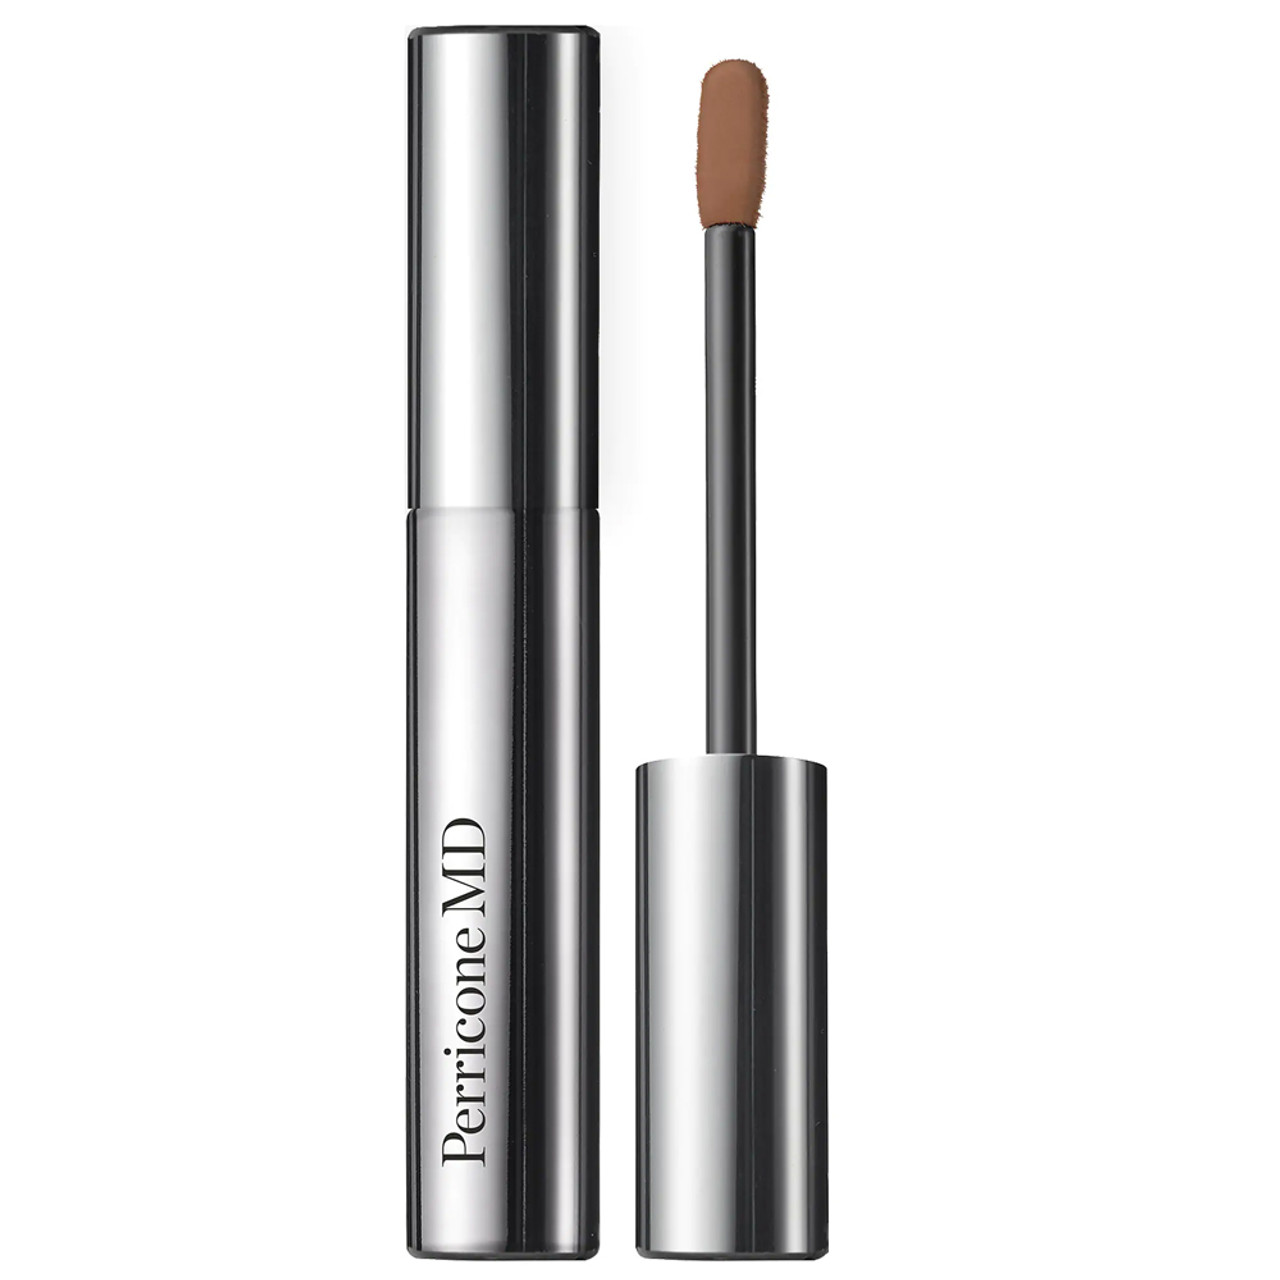 Perricone MD No Makeup Concealer SPF 20 Fair